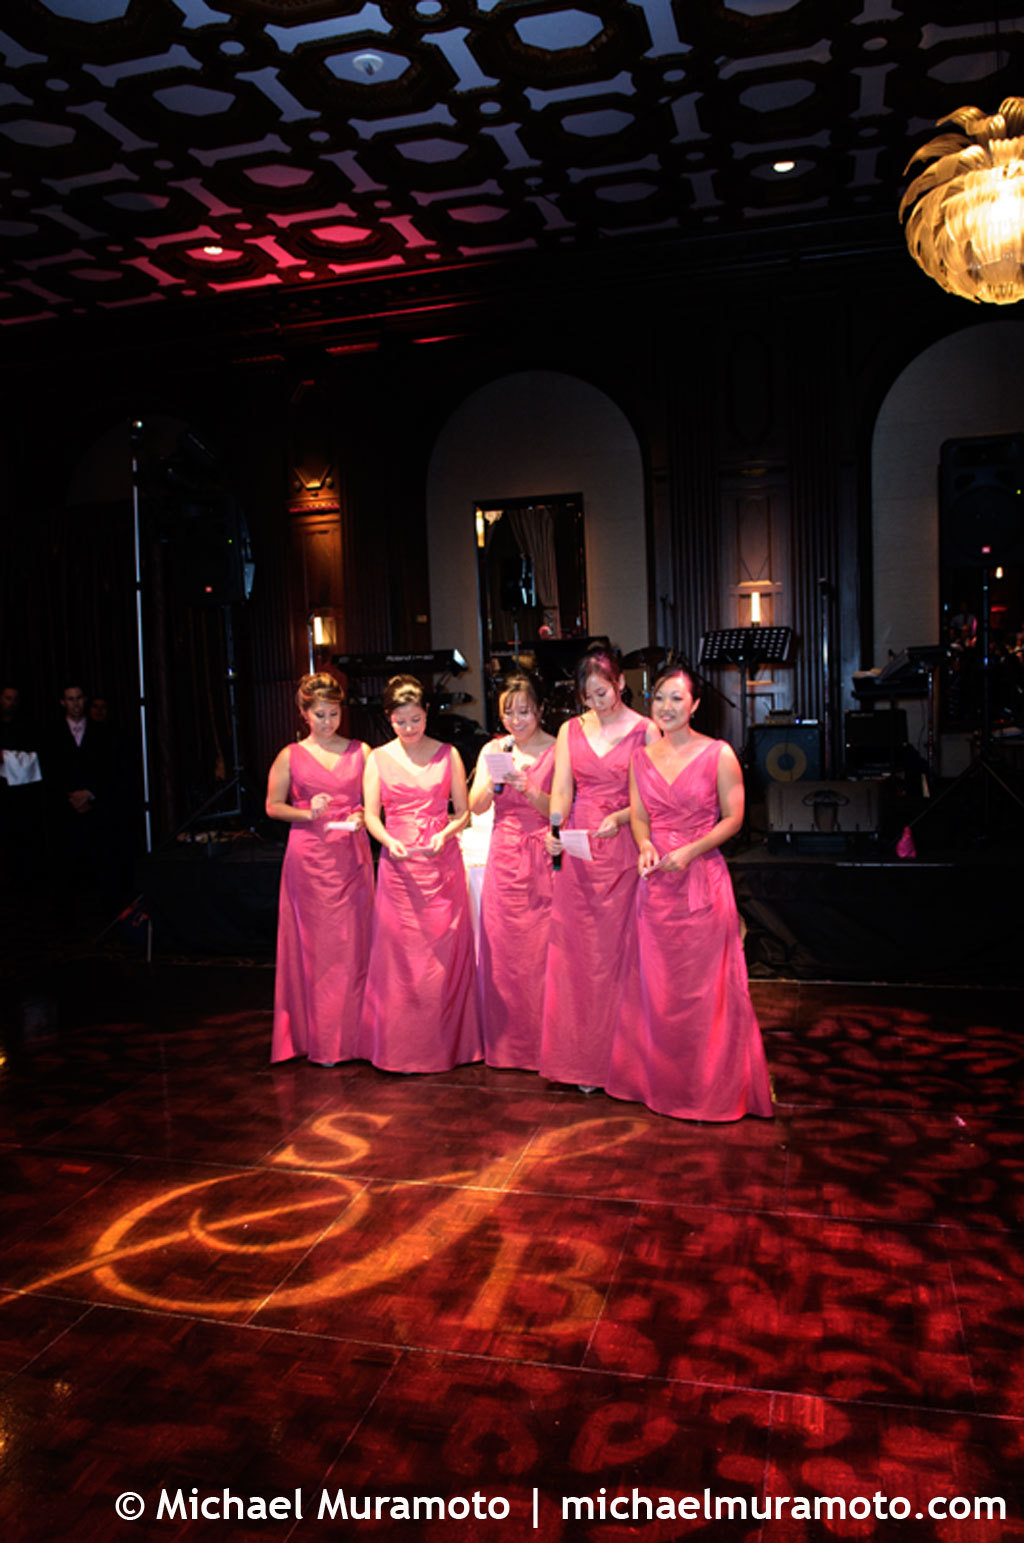 pink, Lighting, Toast, Bridesmaid, San francisco, Michael muramoto photography, Julia morgan, Merchants exchange